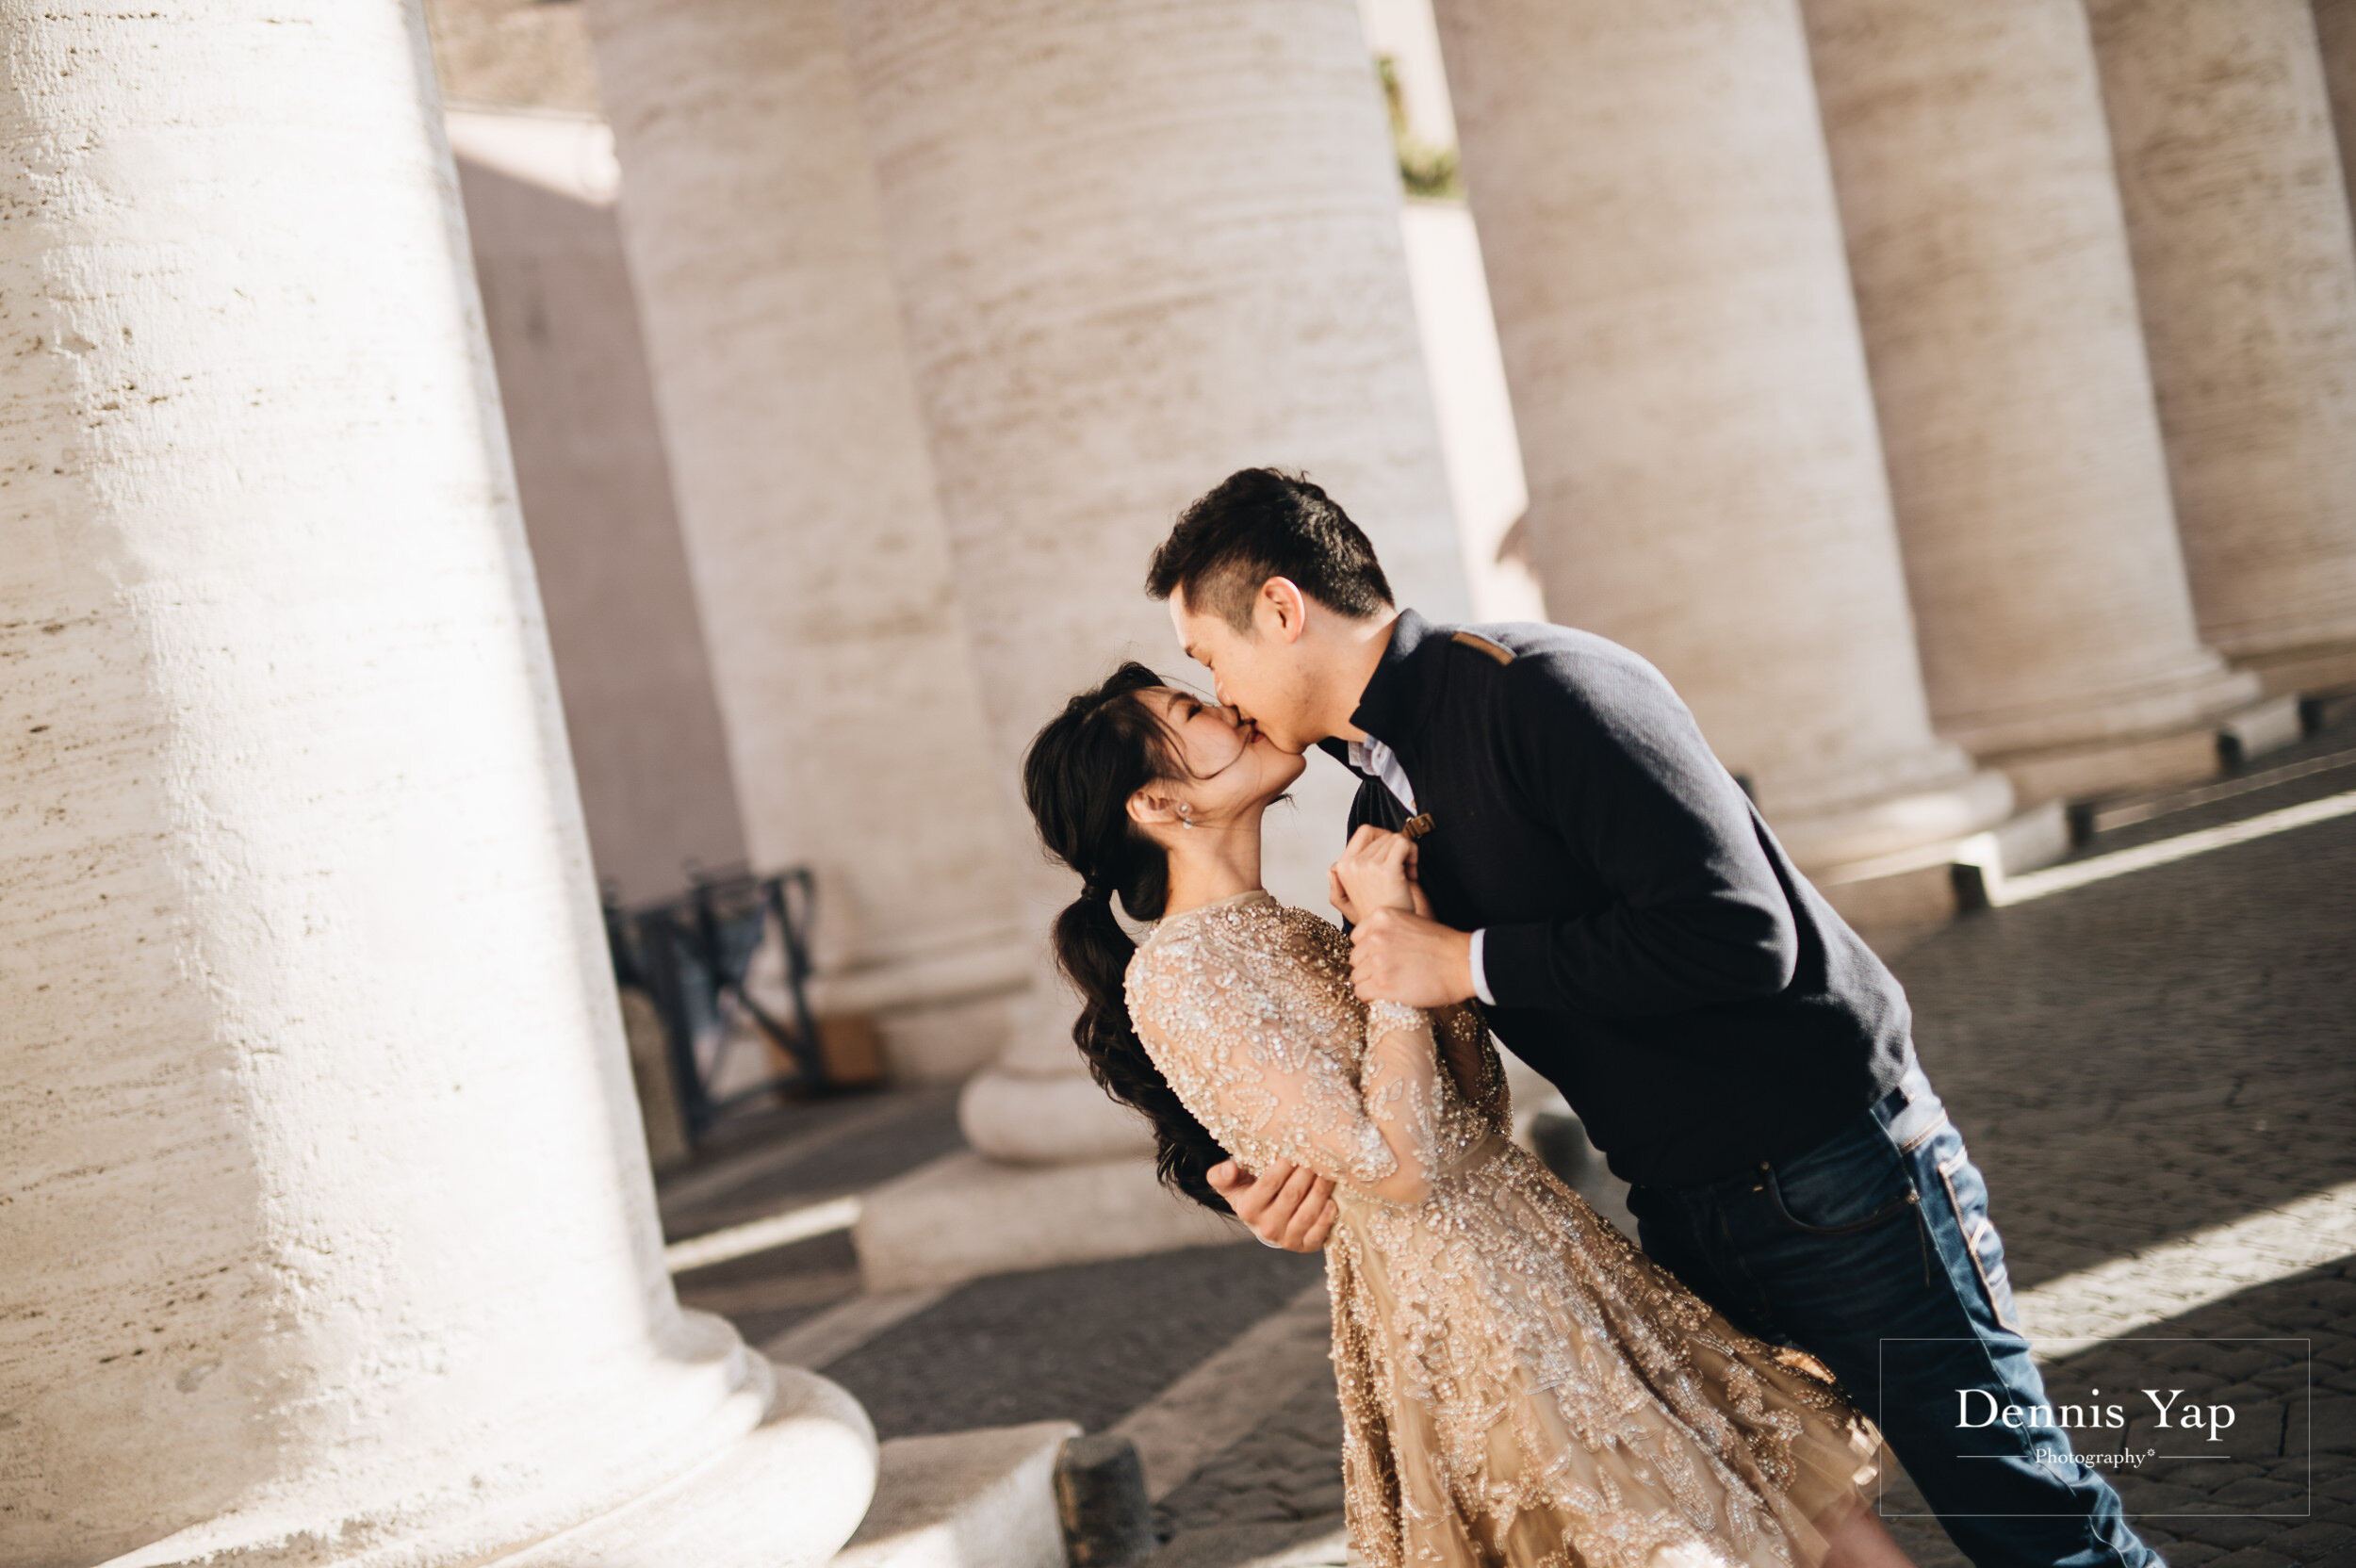 alex chloe pre wedding rome italy dennis yap photography overseas portrait classic beloved-122.jpg